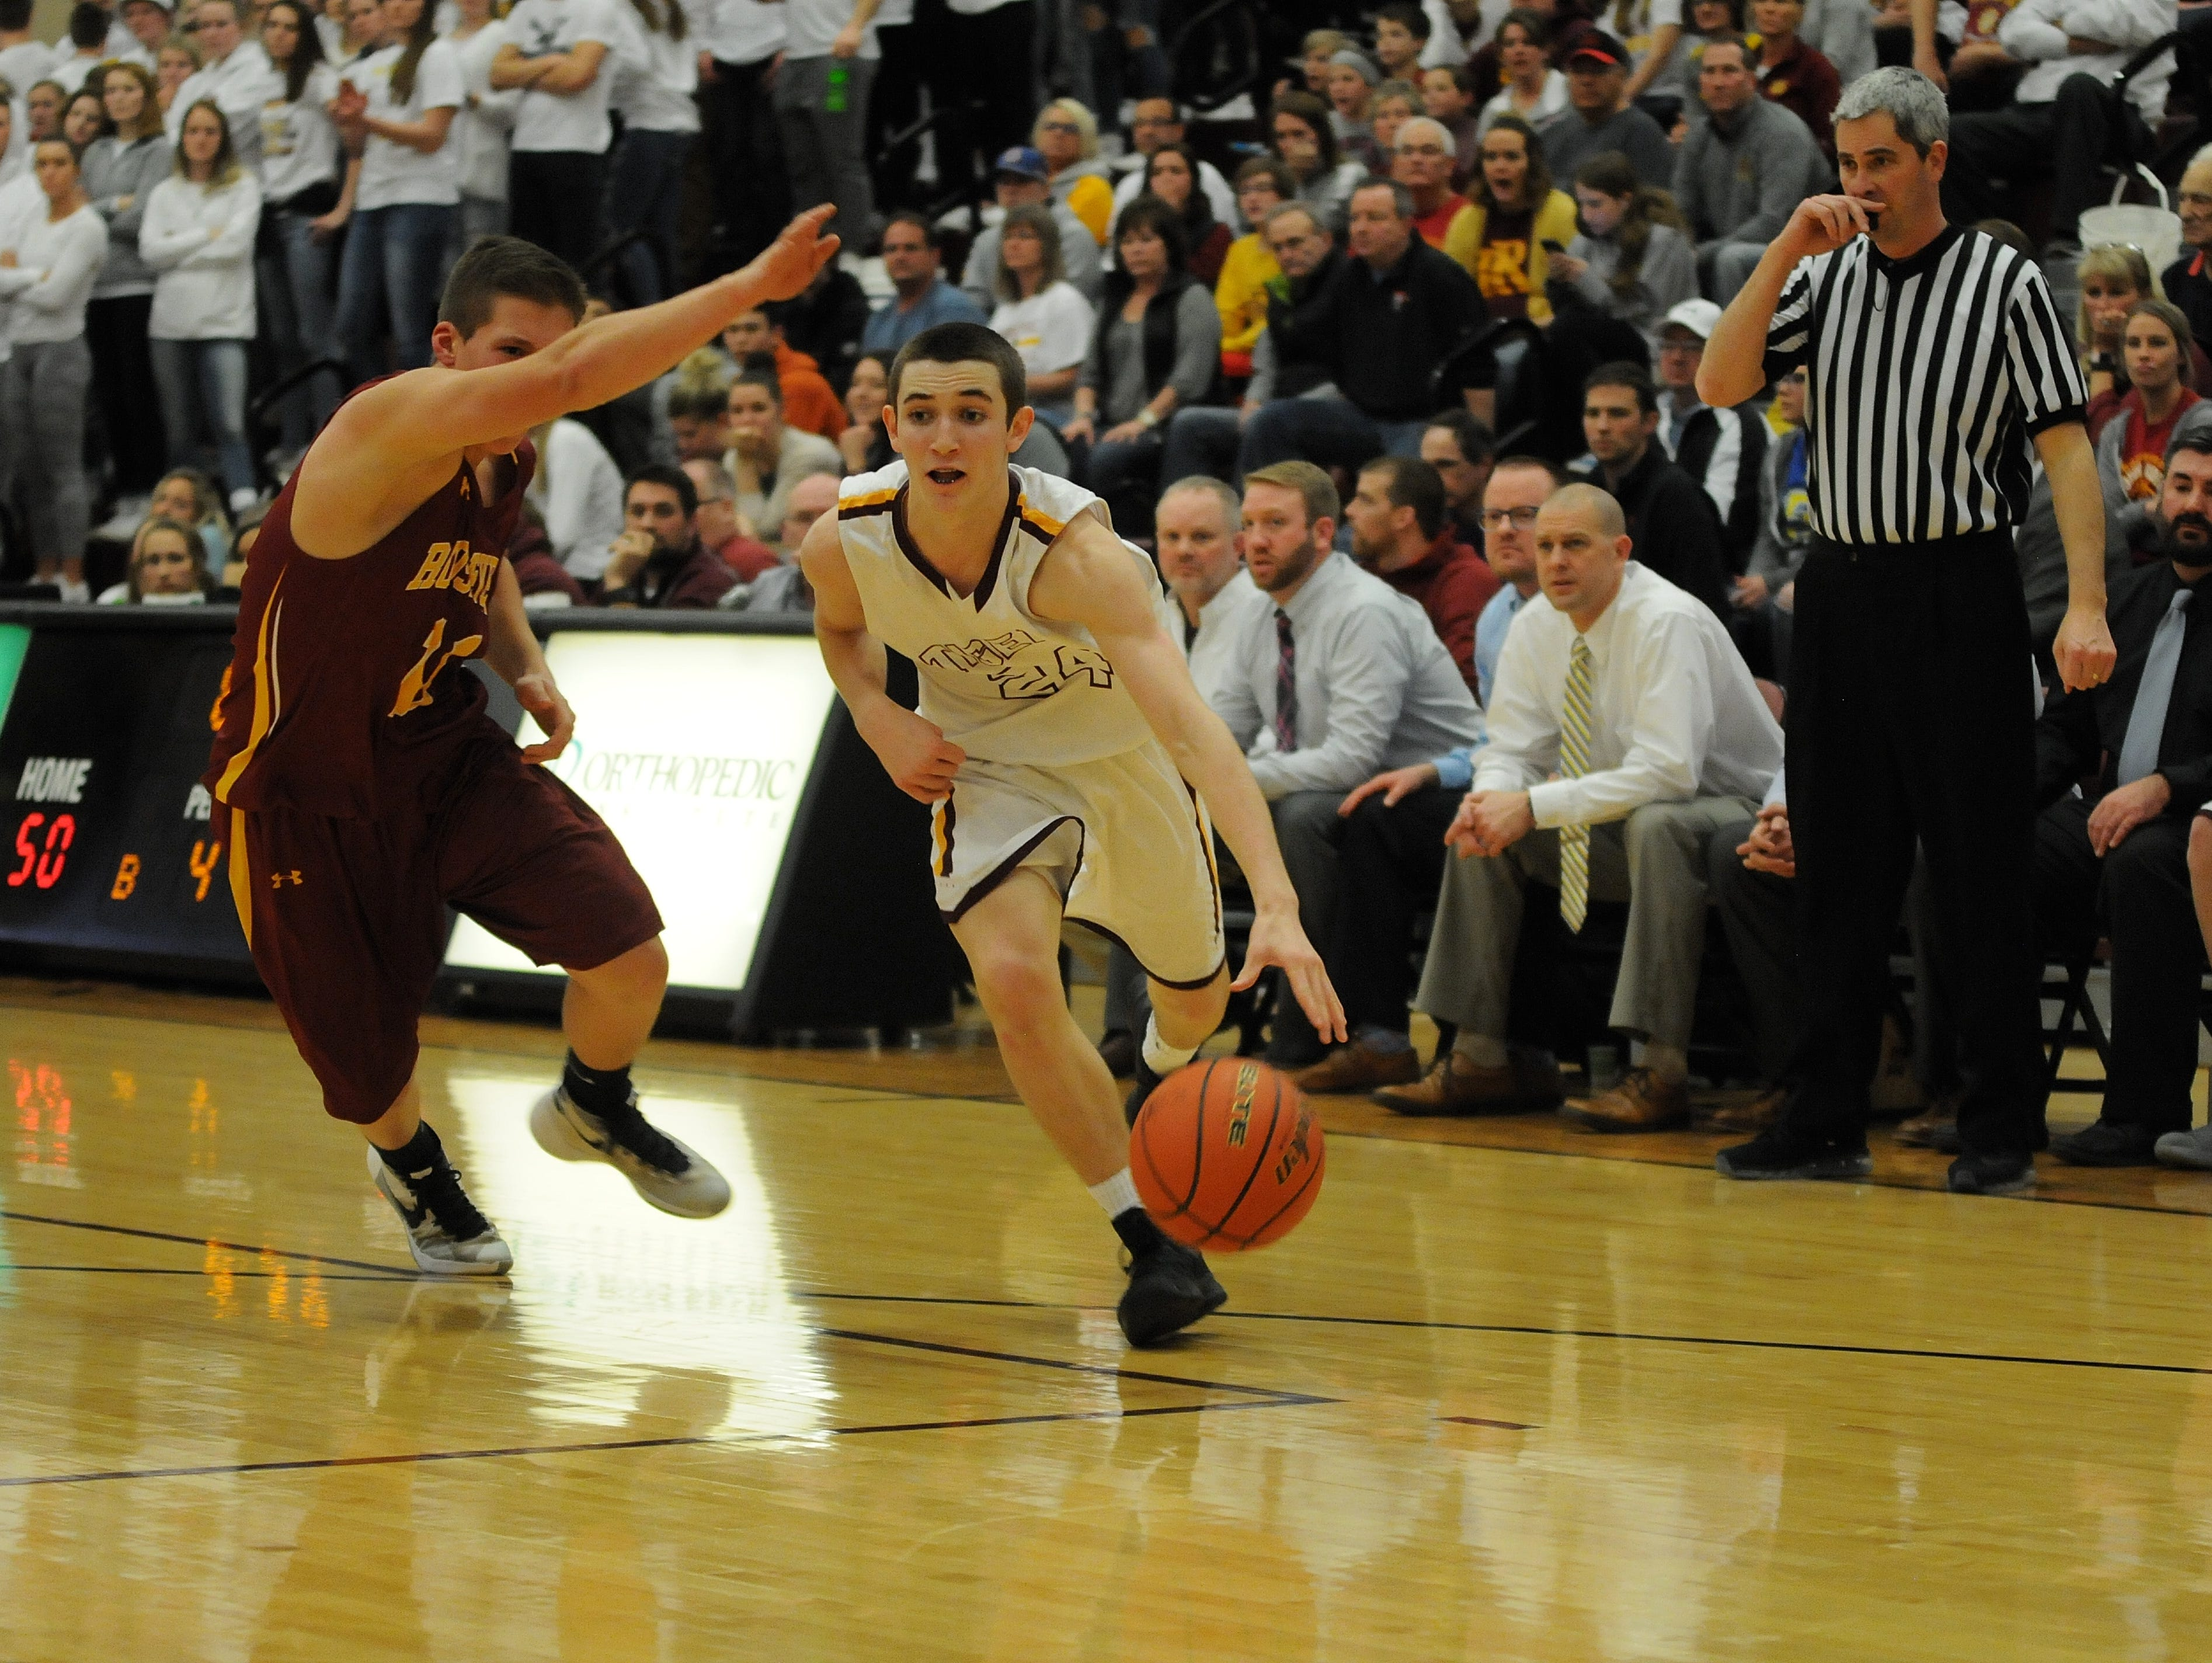 Harrisburg's Nick Hoyt drives around SF Roosevelt's Austin Portner during the Region 1AA game in Harrisburg on Tuesday night. The Tigers won 71-52 to earn their first trip to state in Class AA and first since 2001.